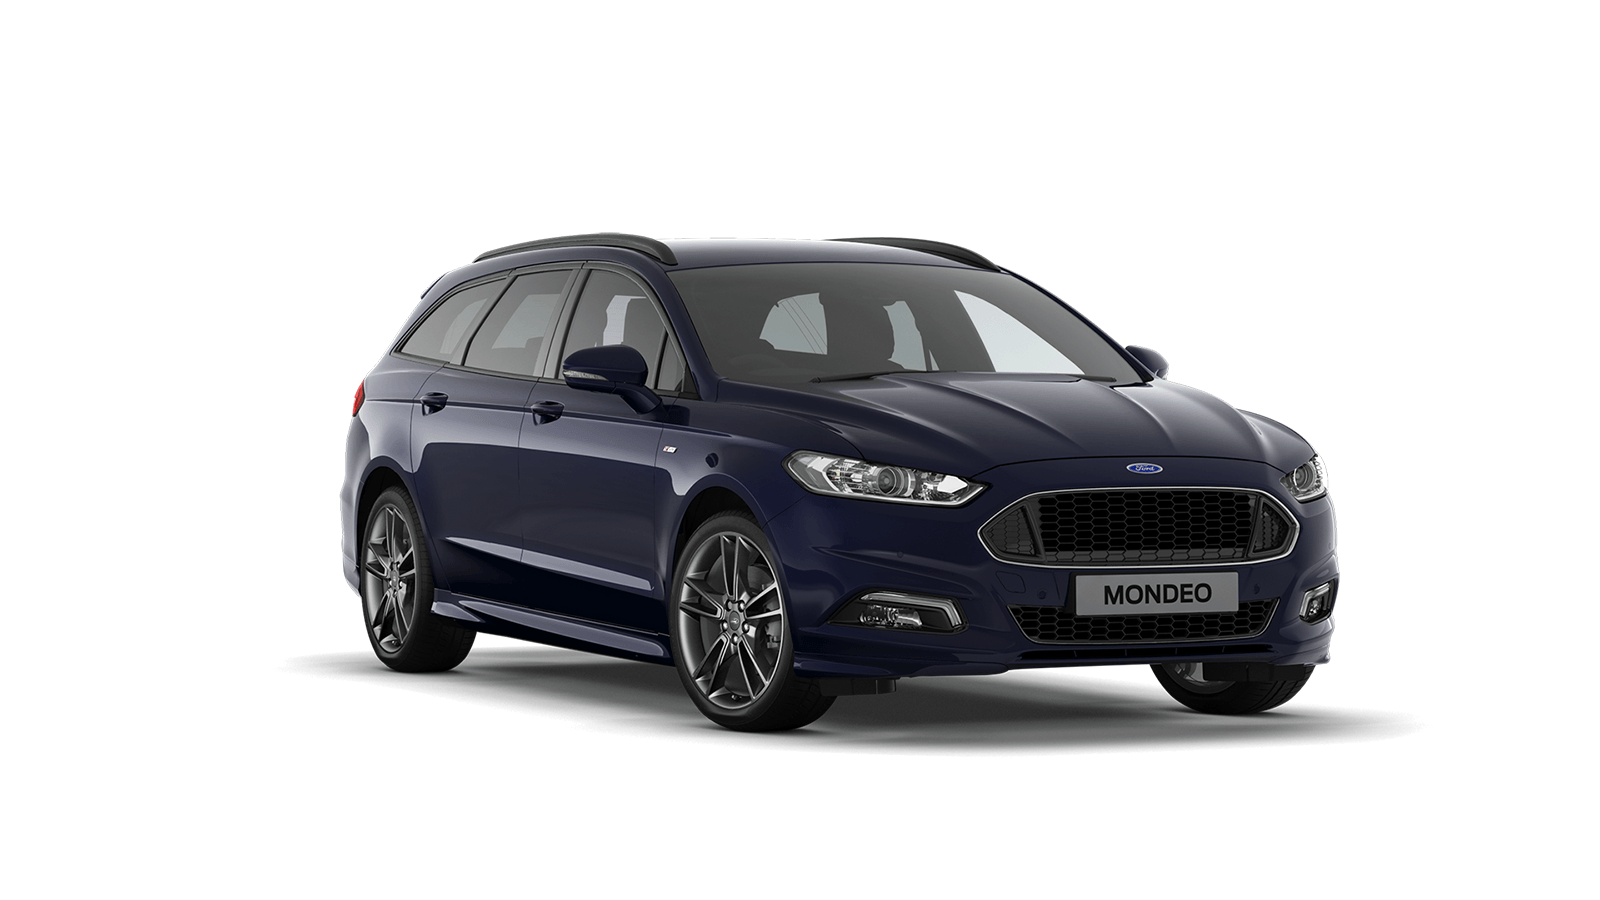 Ford Mondeo at Browne & Day